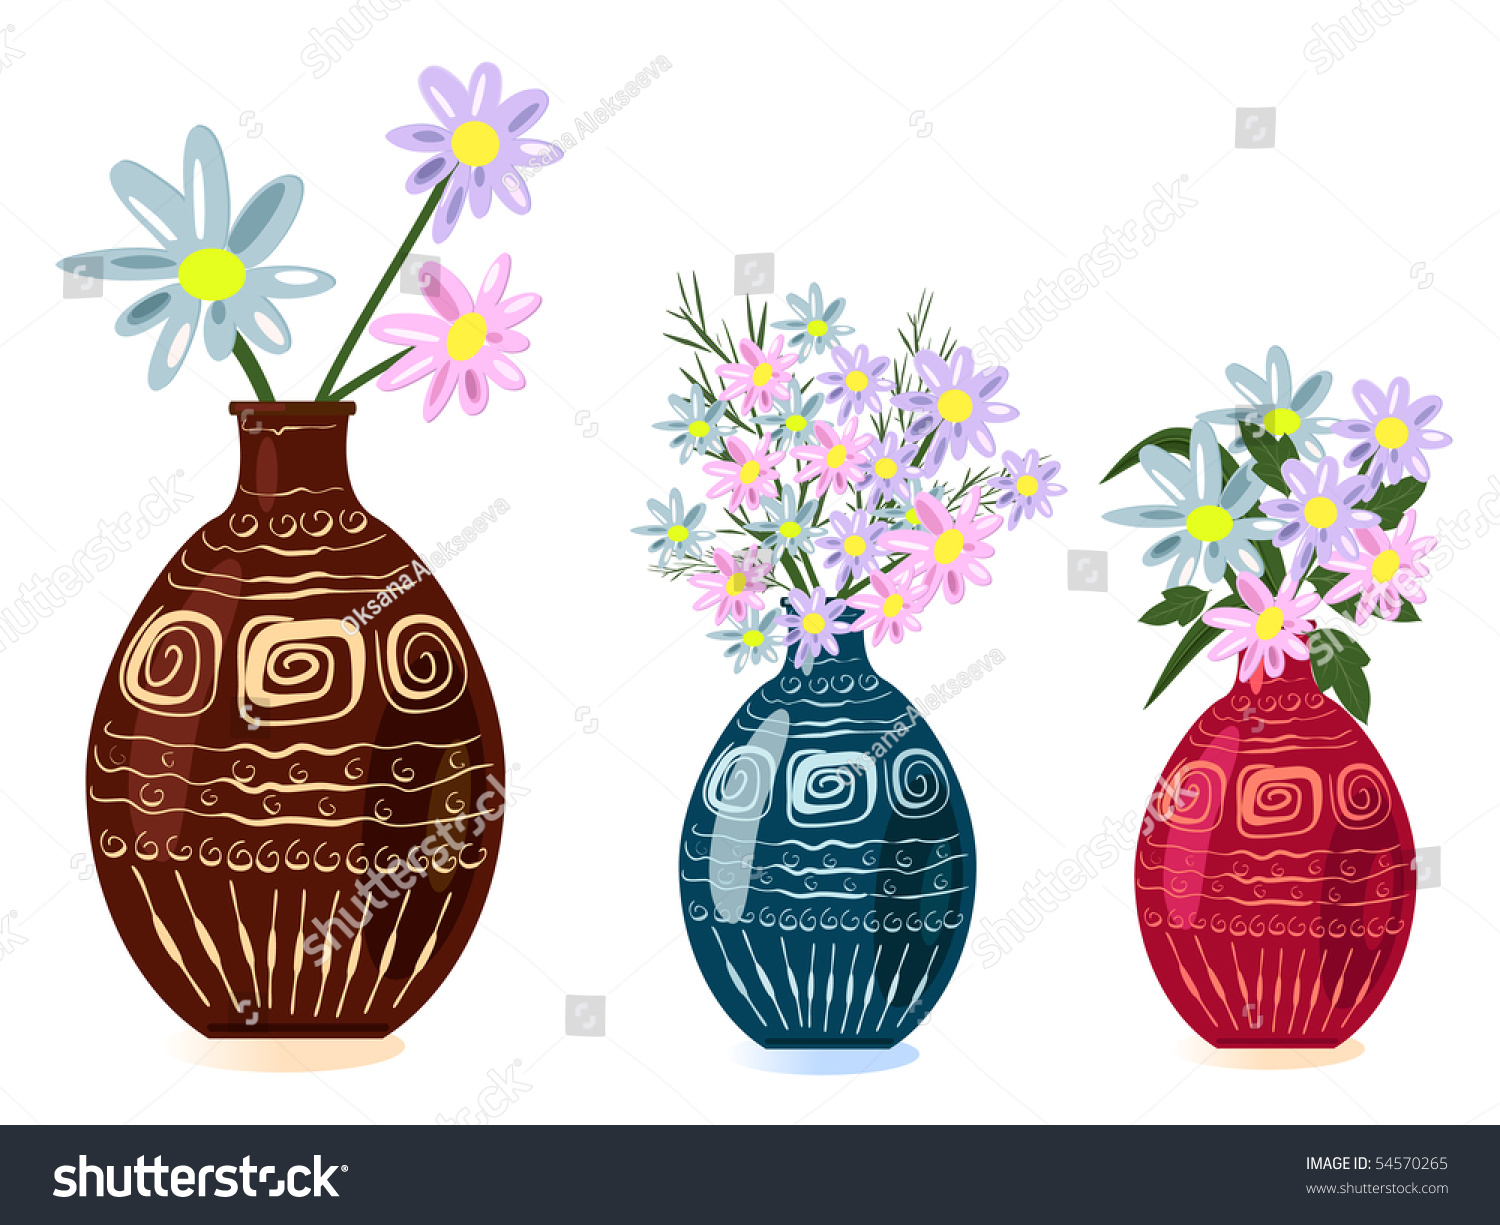 Decorative Vase With Flowers Stock Vector Illustration